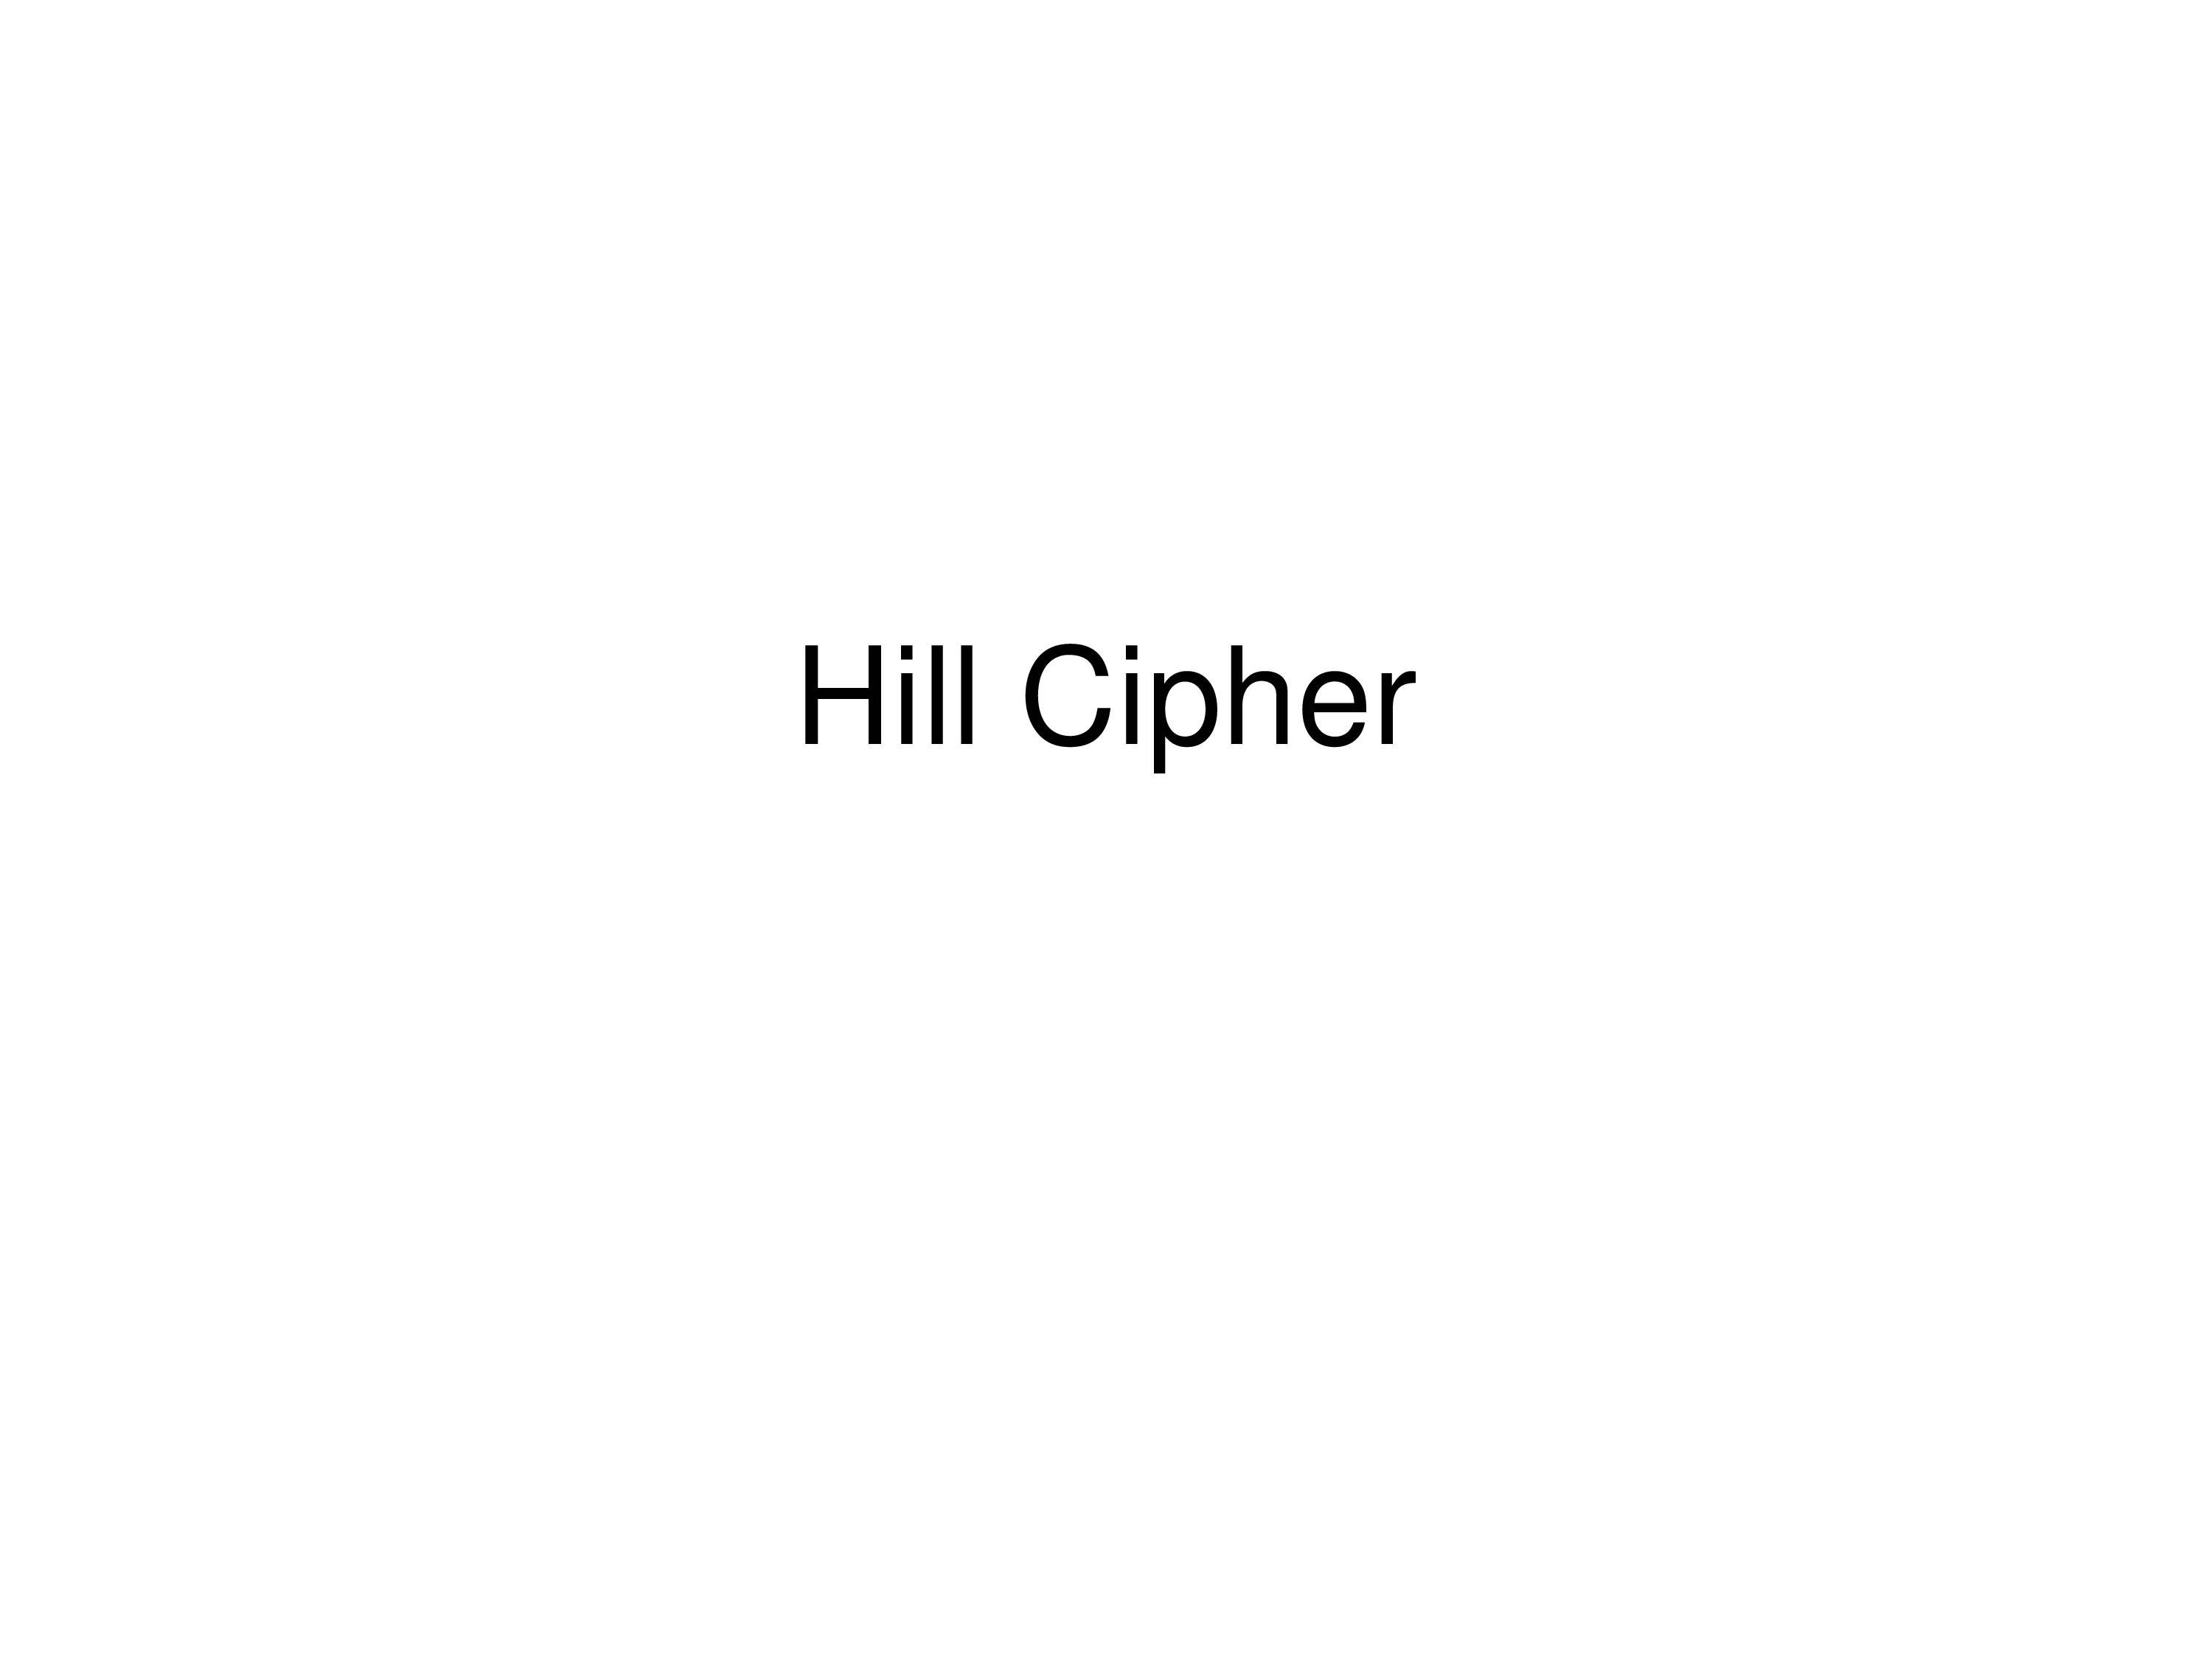 PPT On Hill Cipher